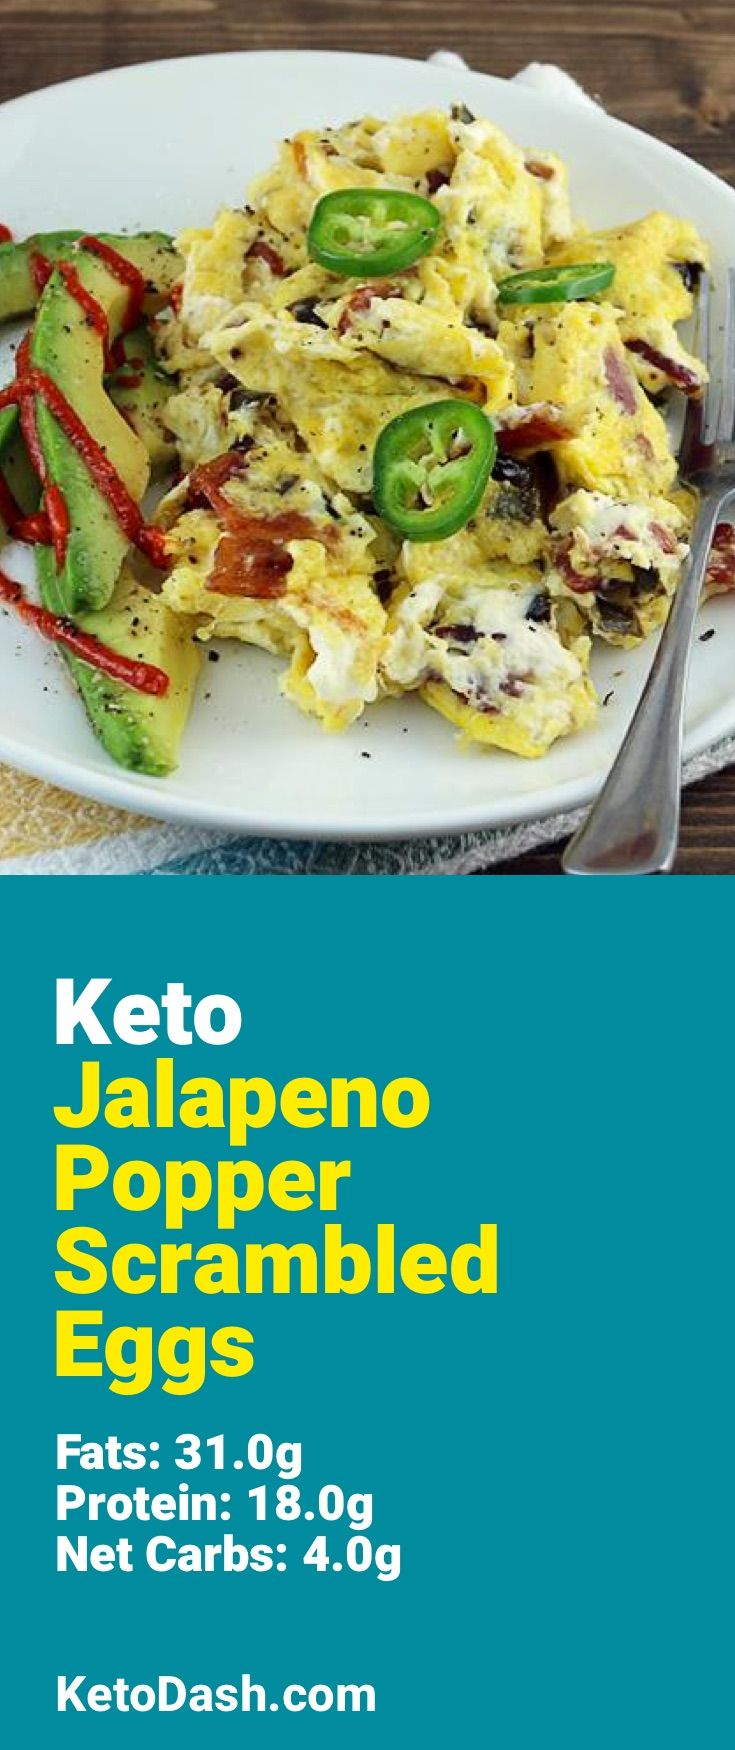 Trying this Jalapeno Popper Scrambled Eggs and it is delicious. What a great keto recipe. #keto #ketorecipes #lowcarb #lowcarbrecipes #healthyeating #healthyrecipes #diabeticfriendly #lowcarbdiet #ketodiet #ketogenicdiet